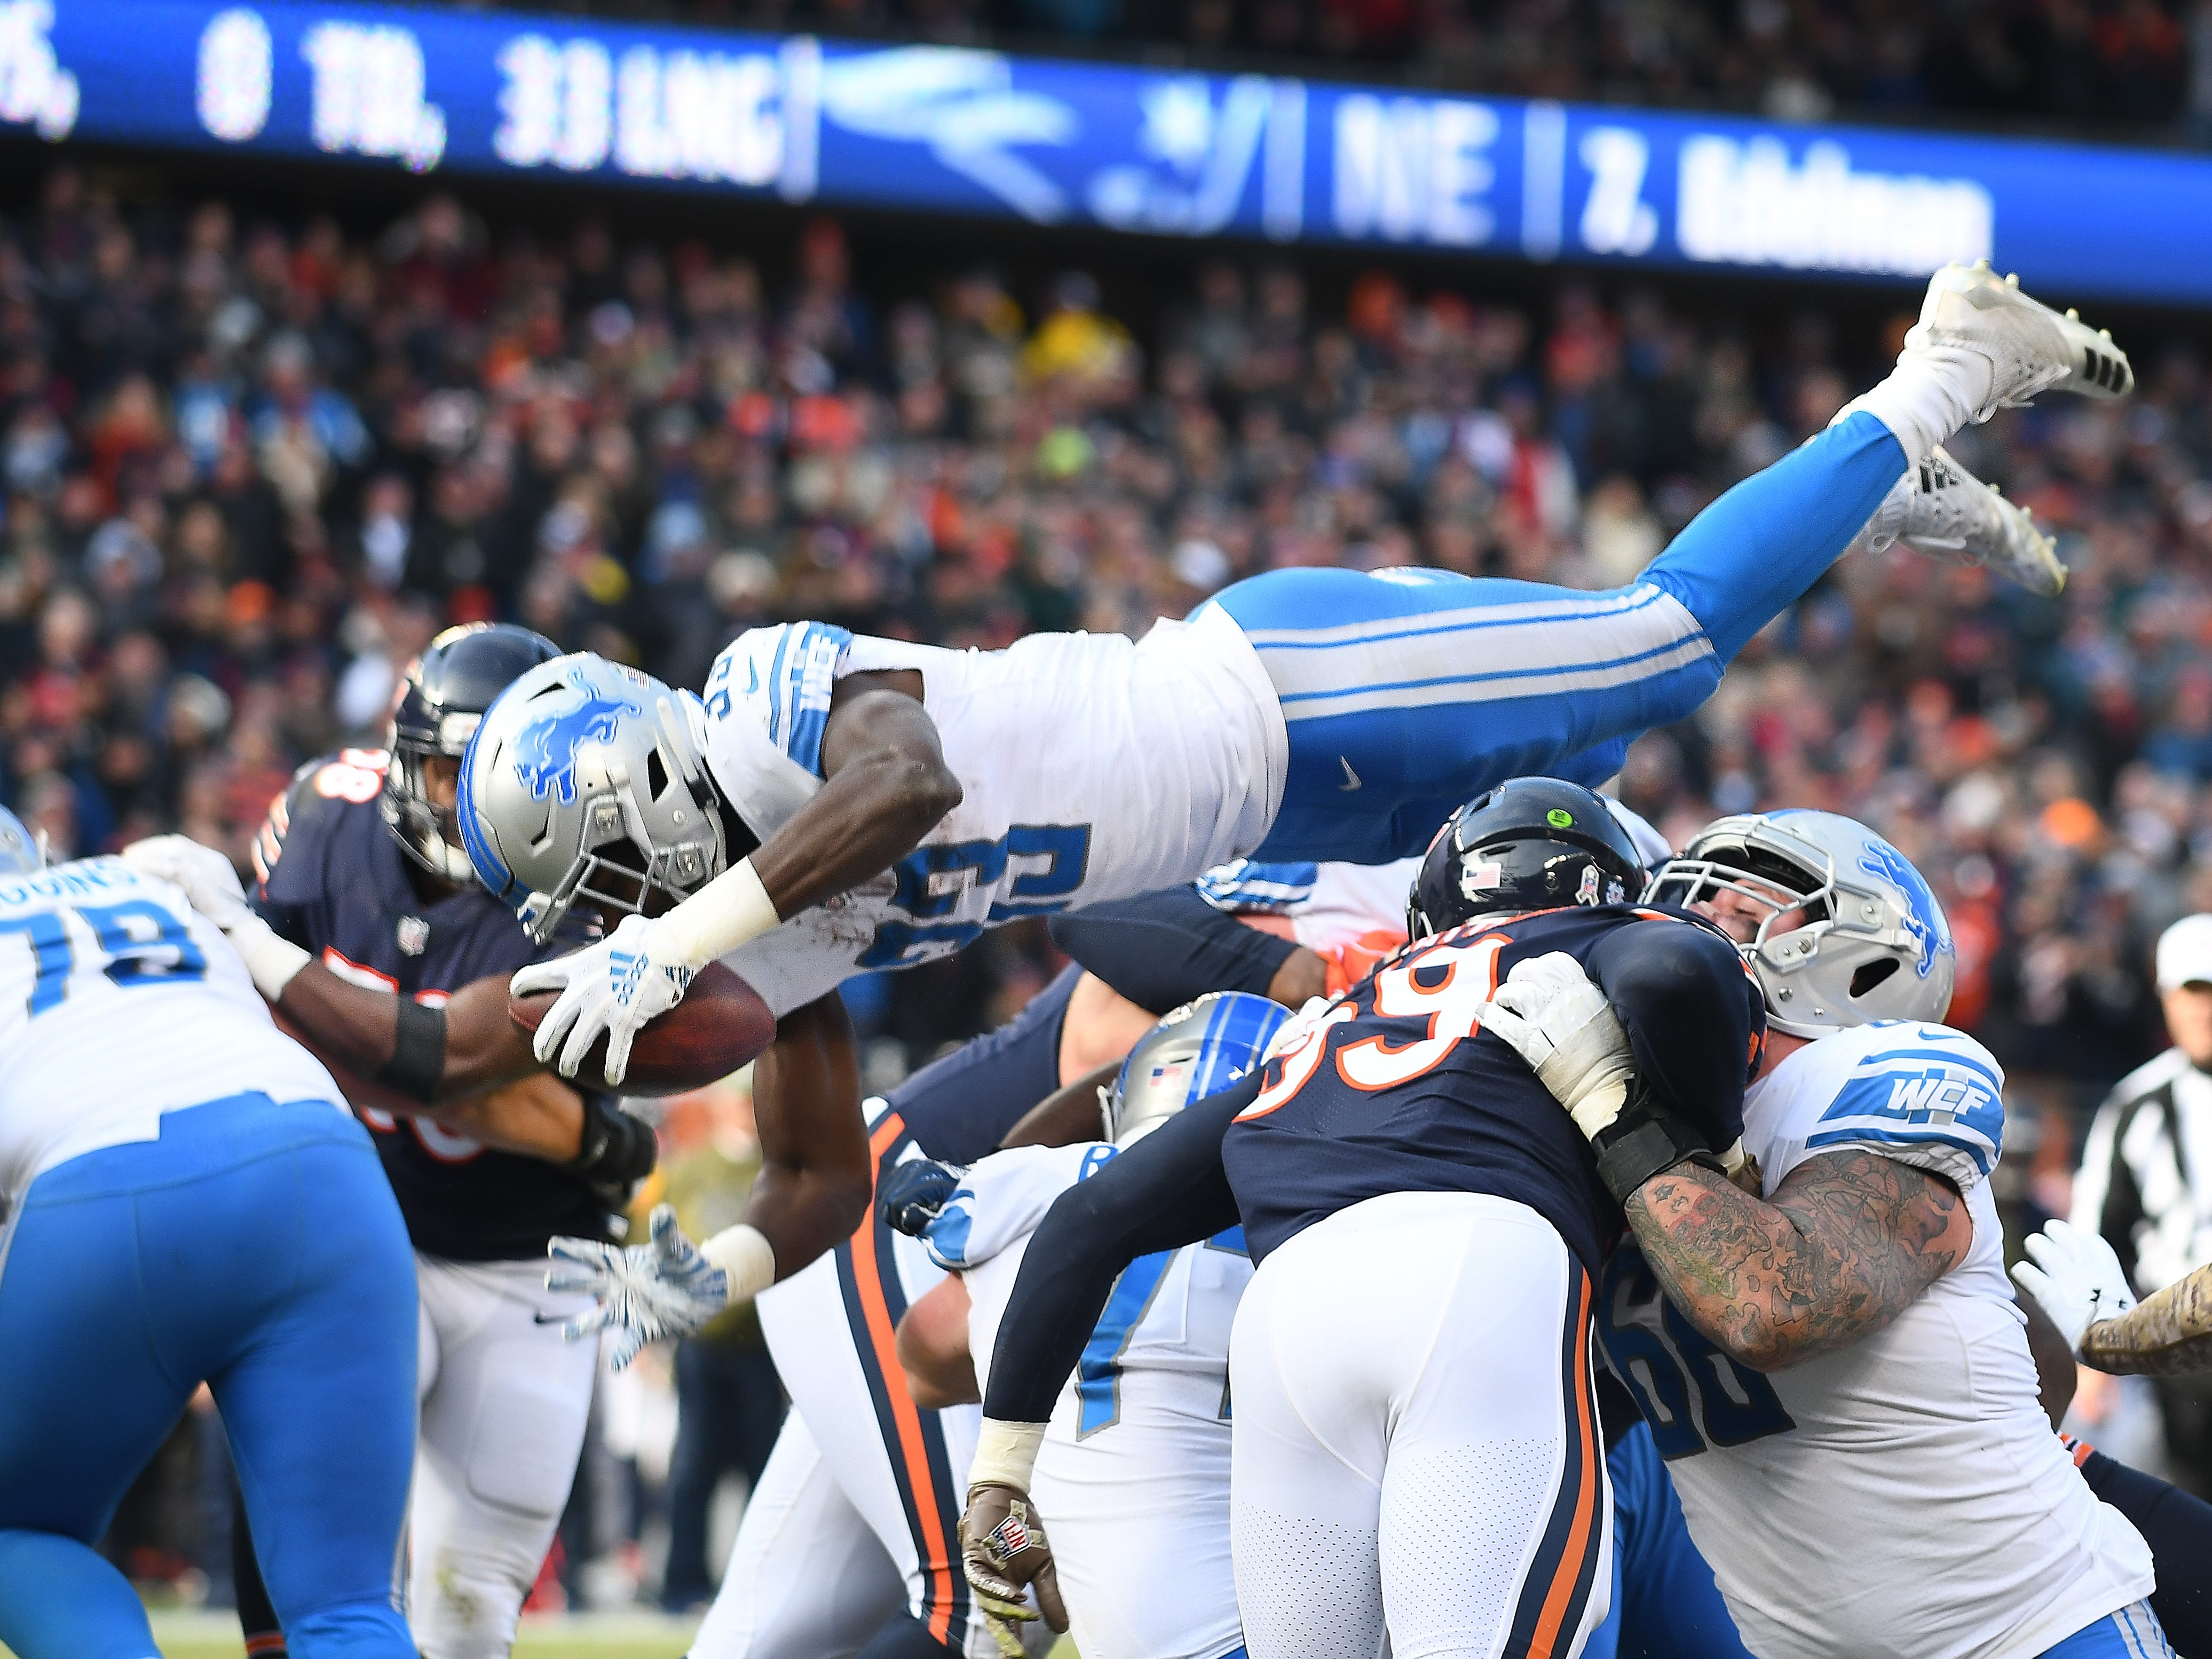 Lions running back Kerryon Johnson leaps over the top for a touchdown against the Chicago Bears at Soldier Field in Chicago on November 11, 2018.  The Lions lost 34-22.